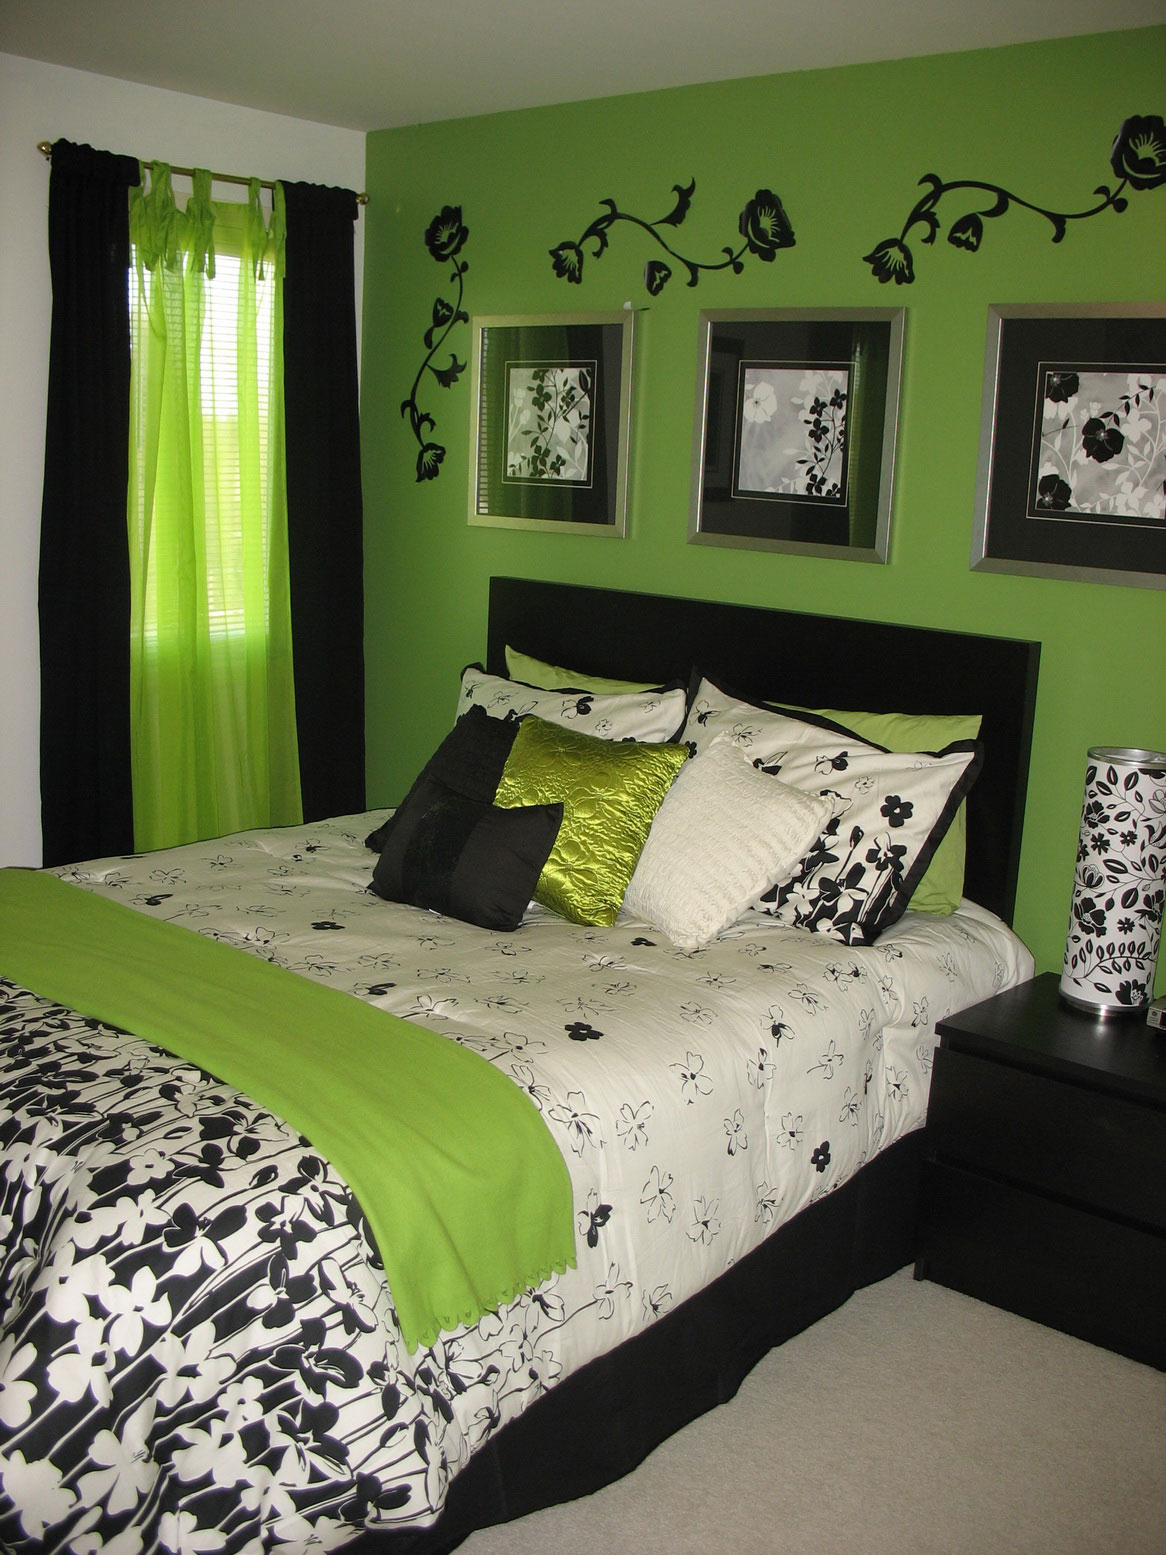 Bedroom ideas for young adults homesfeed for Bedroom picture ideas